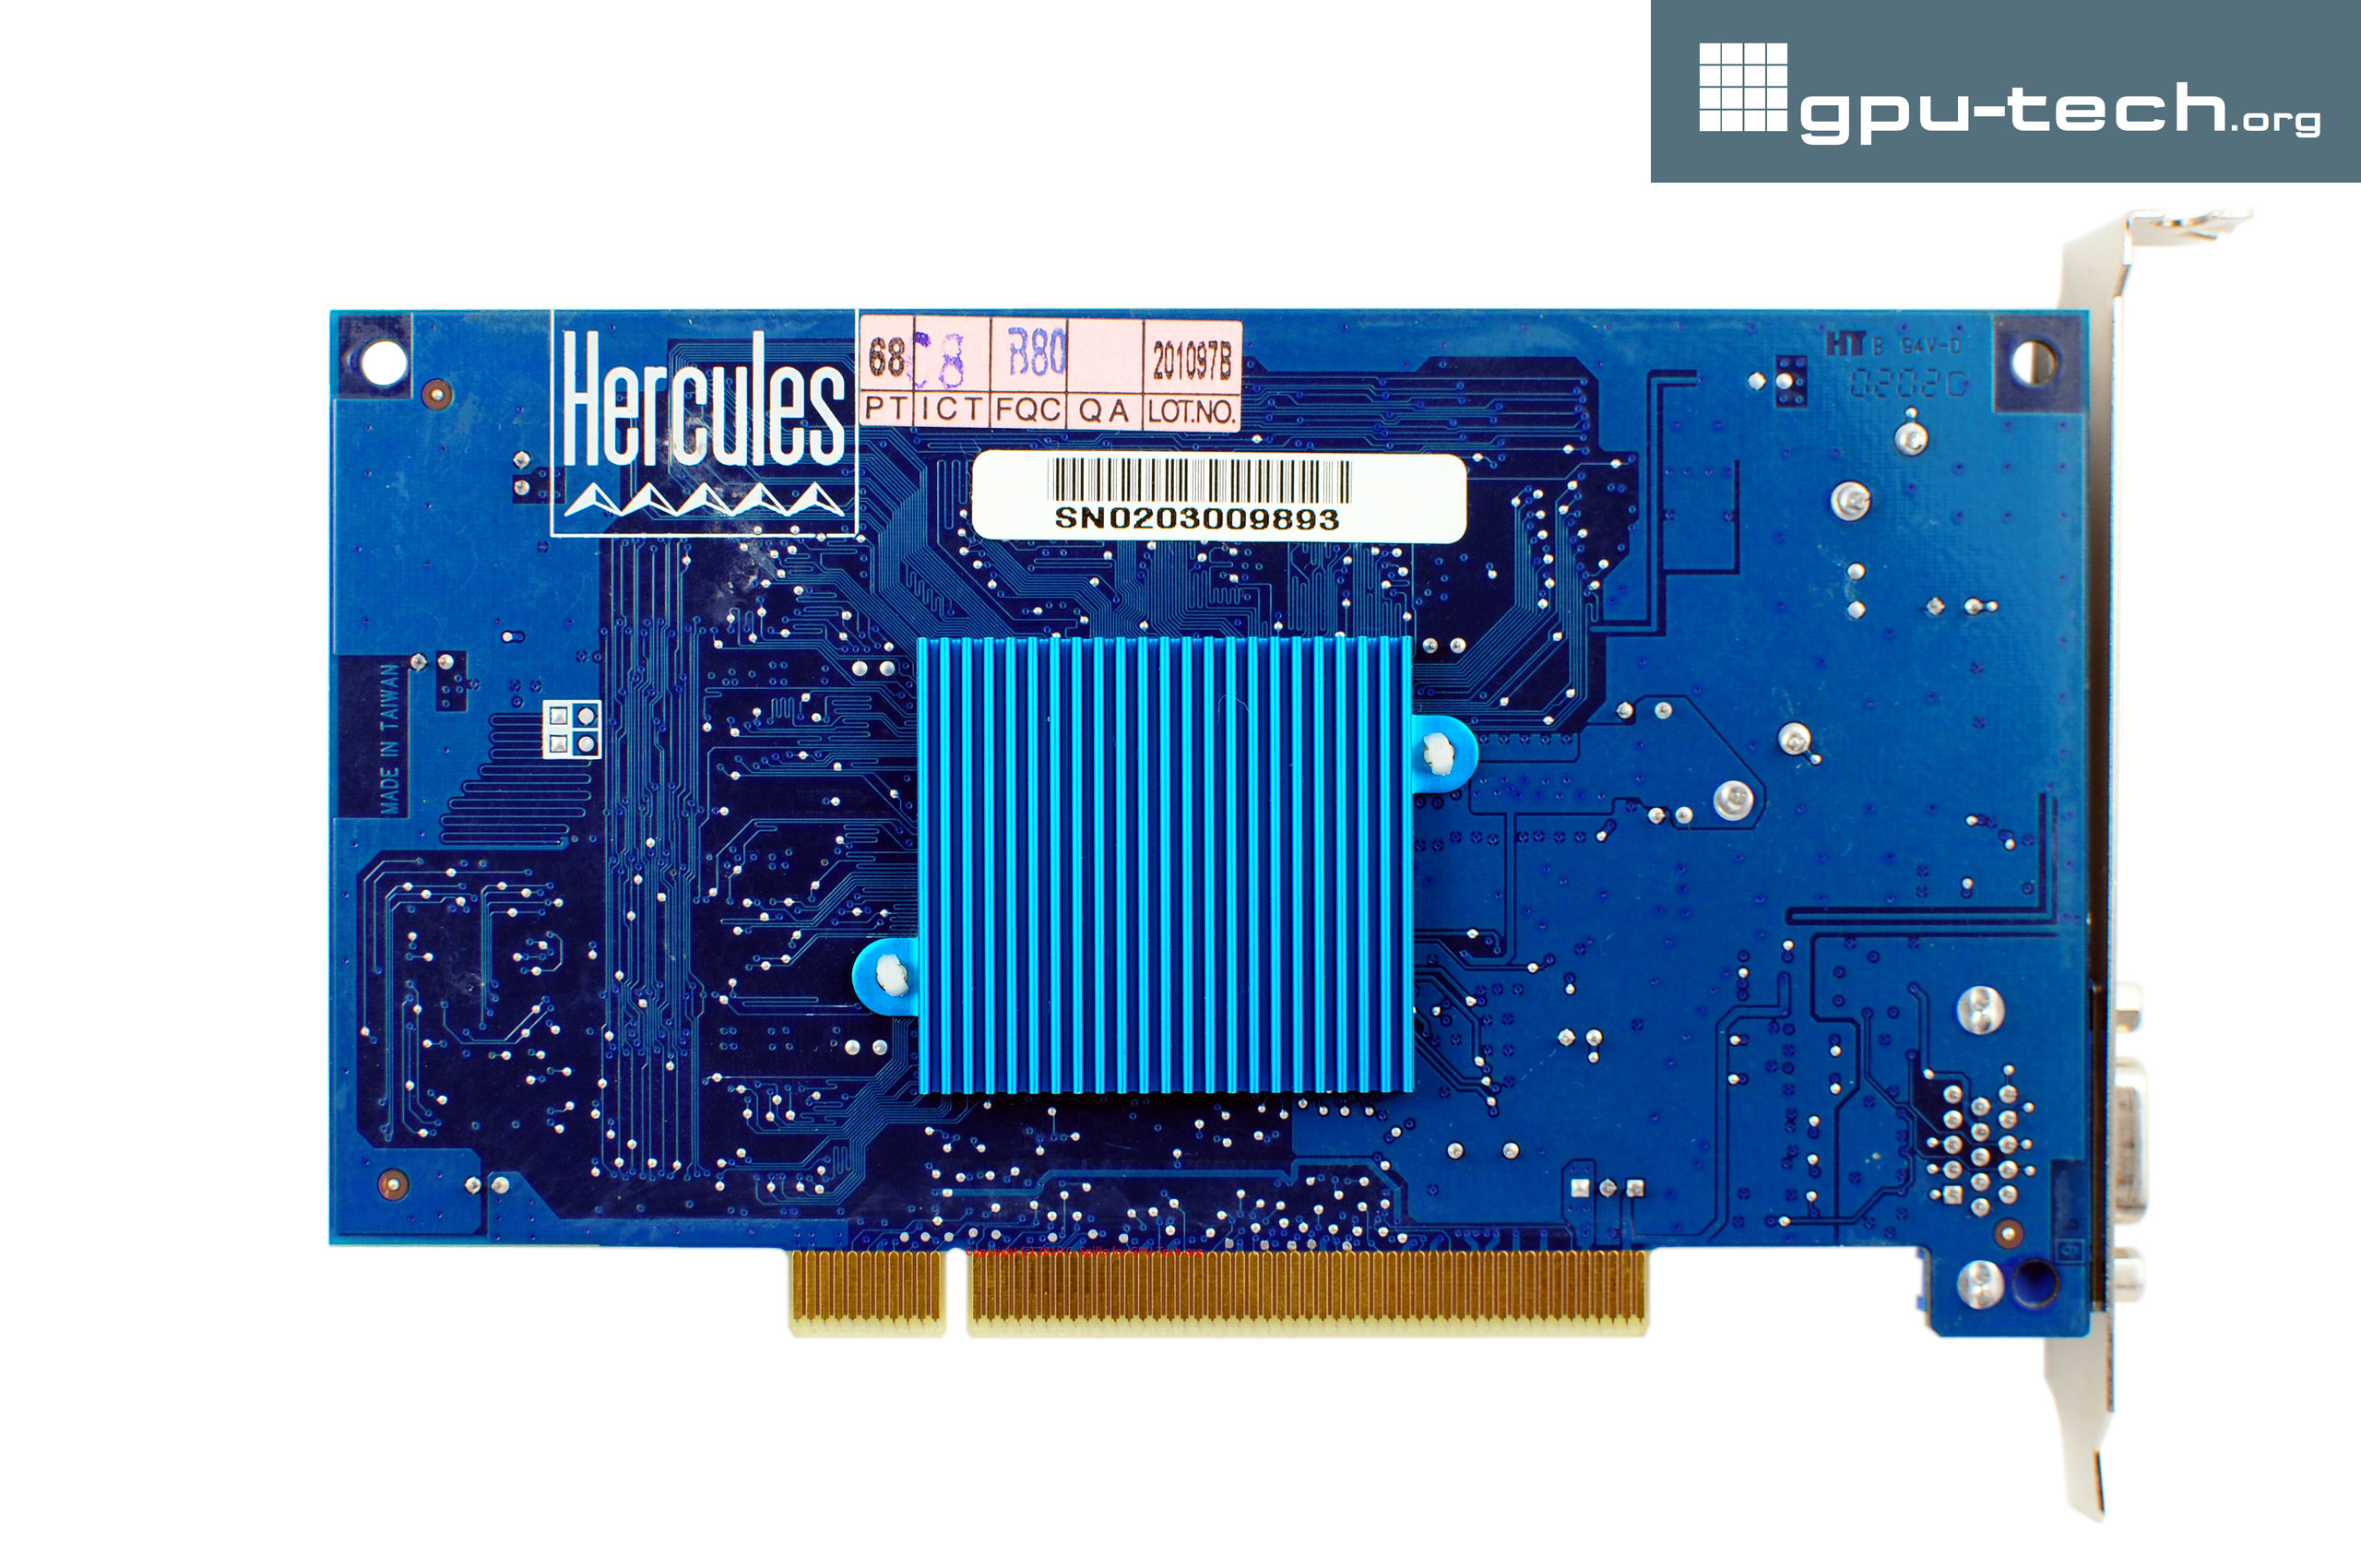 PowerVR Series 3: STG4000 Kyro on Hercules 3D Prophet 4000 XT PCI back view